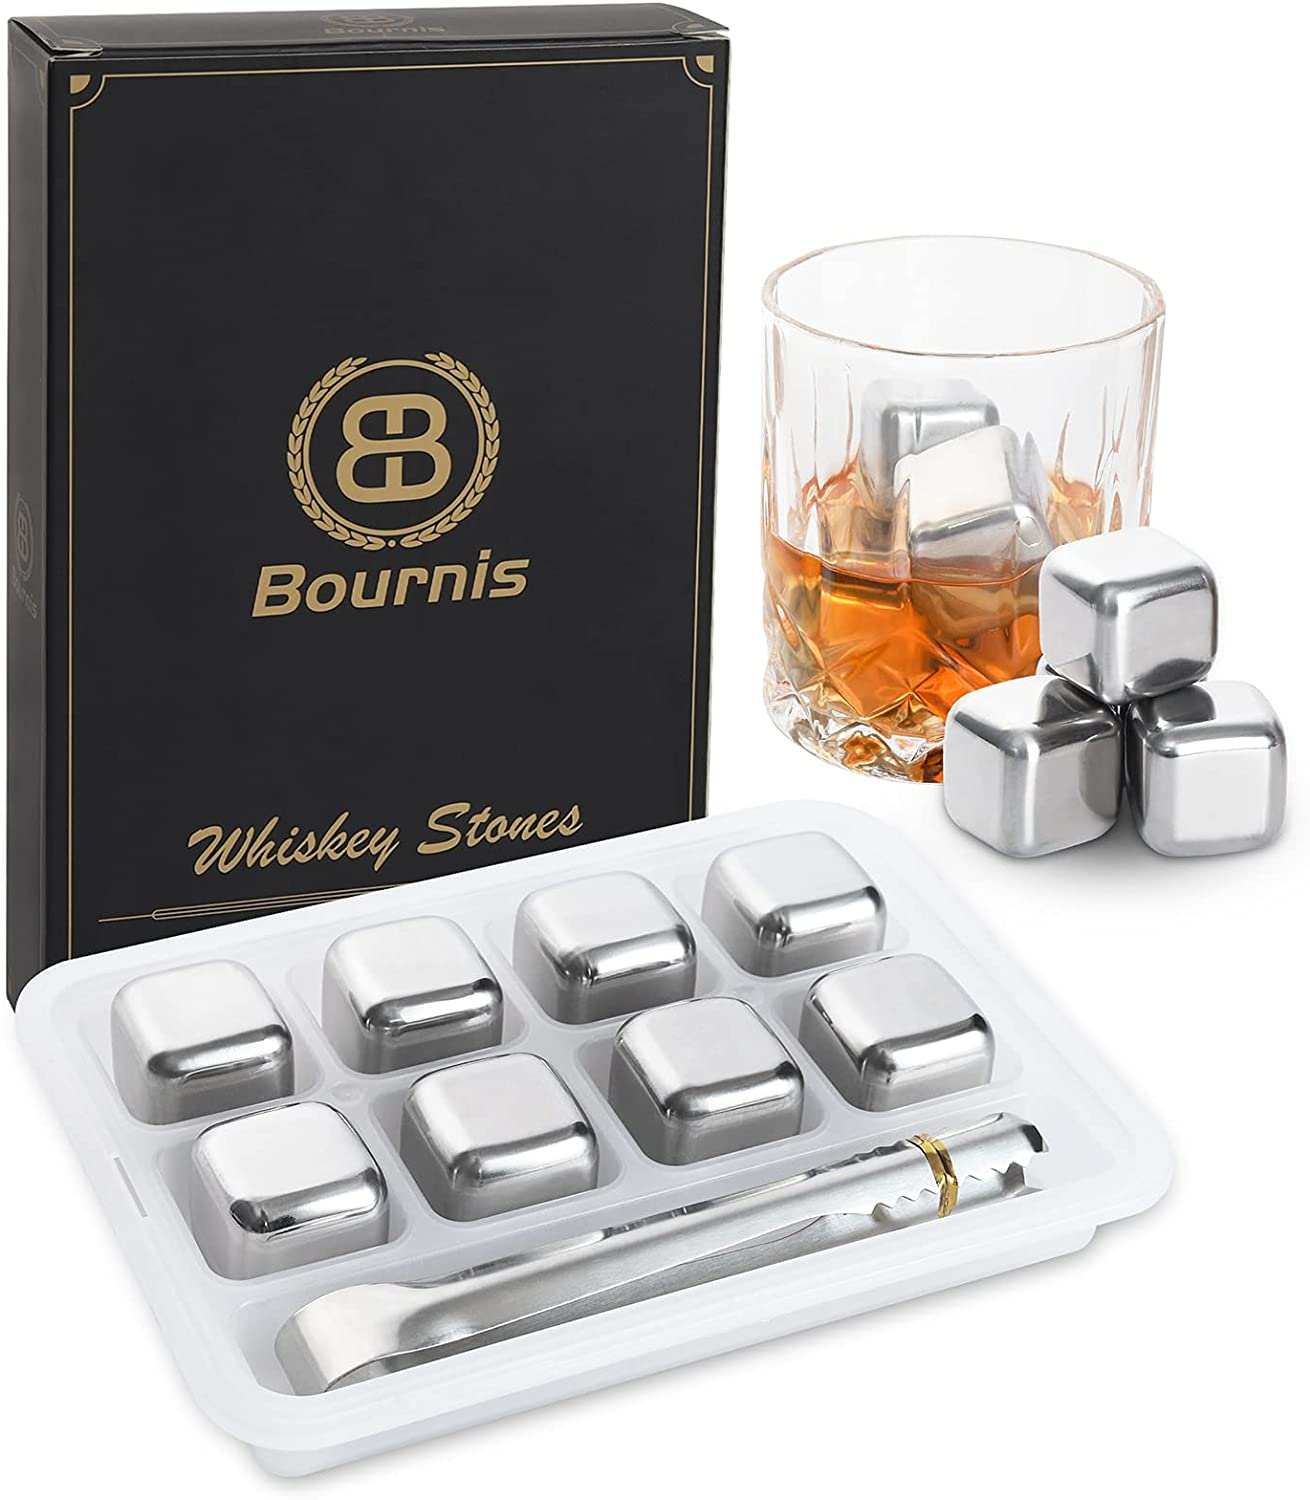 Whiskey Stones quality assurance Gift Set Chilling For Gifts Popular standard Men St Bournis